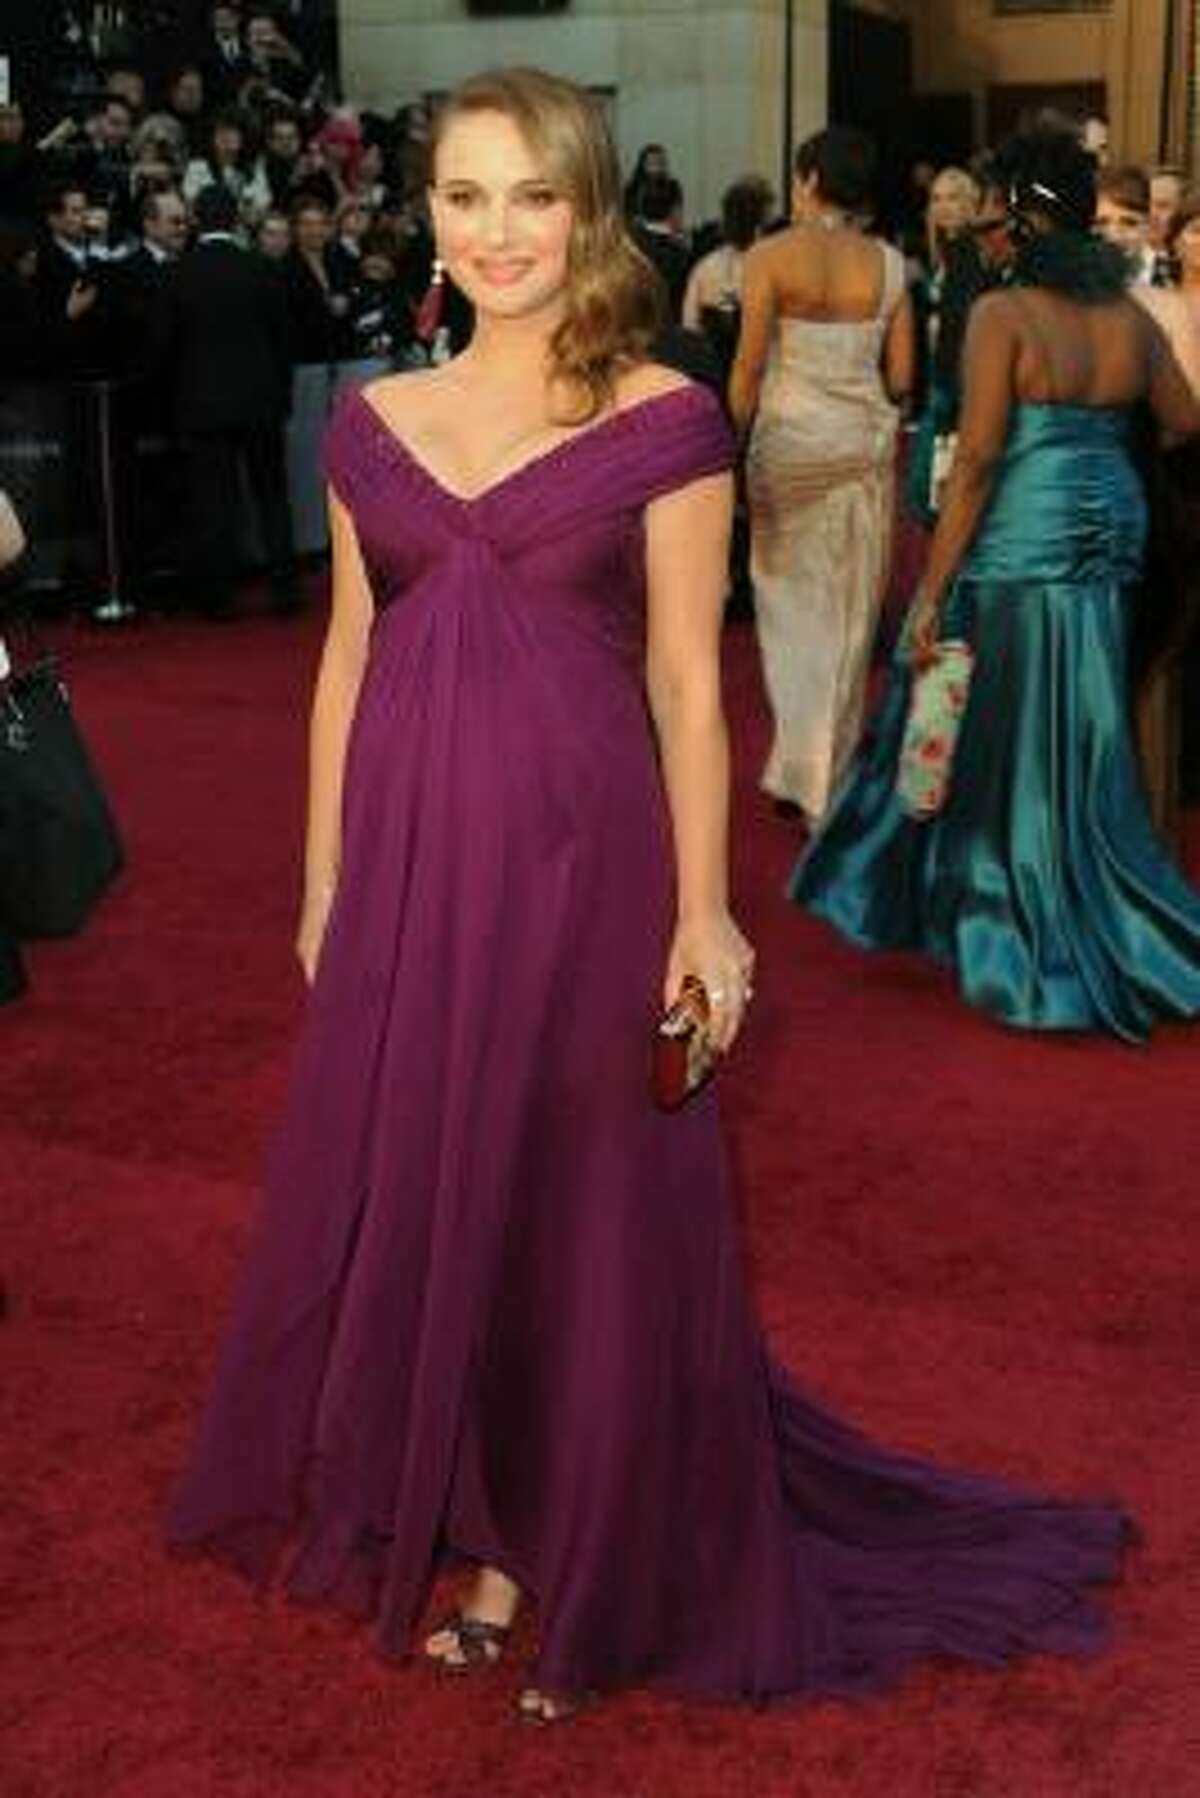 Perhaps the only pregnant woman in human history who could pull off purple.